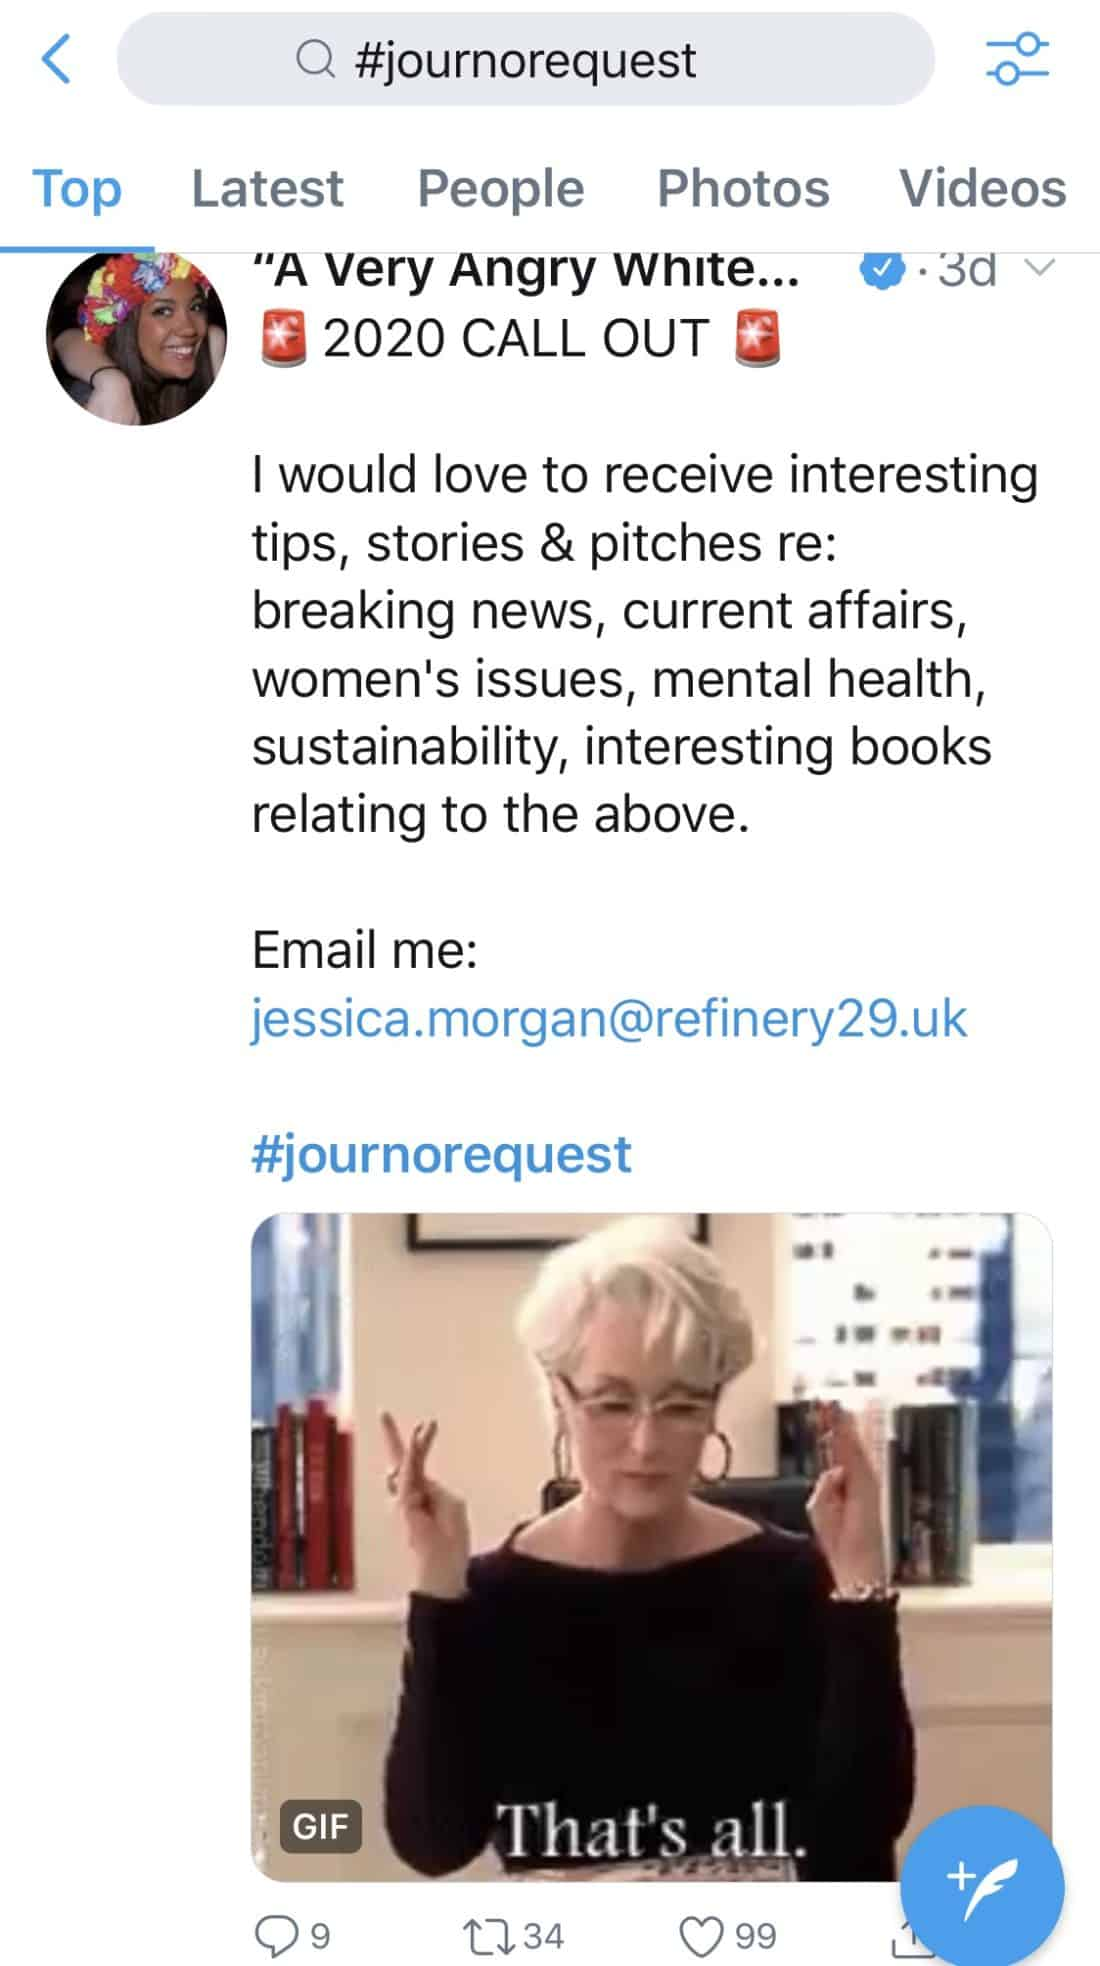 Use Twitter to find #JournoRequest Media Features